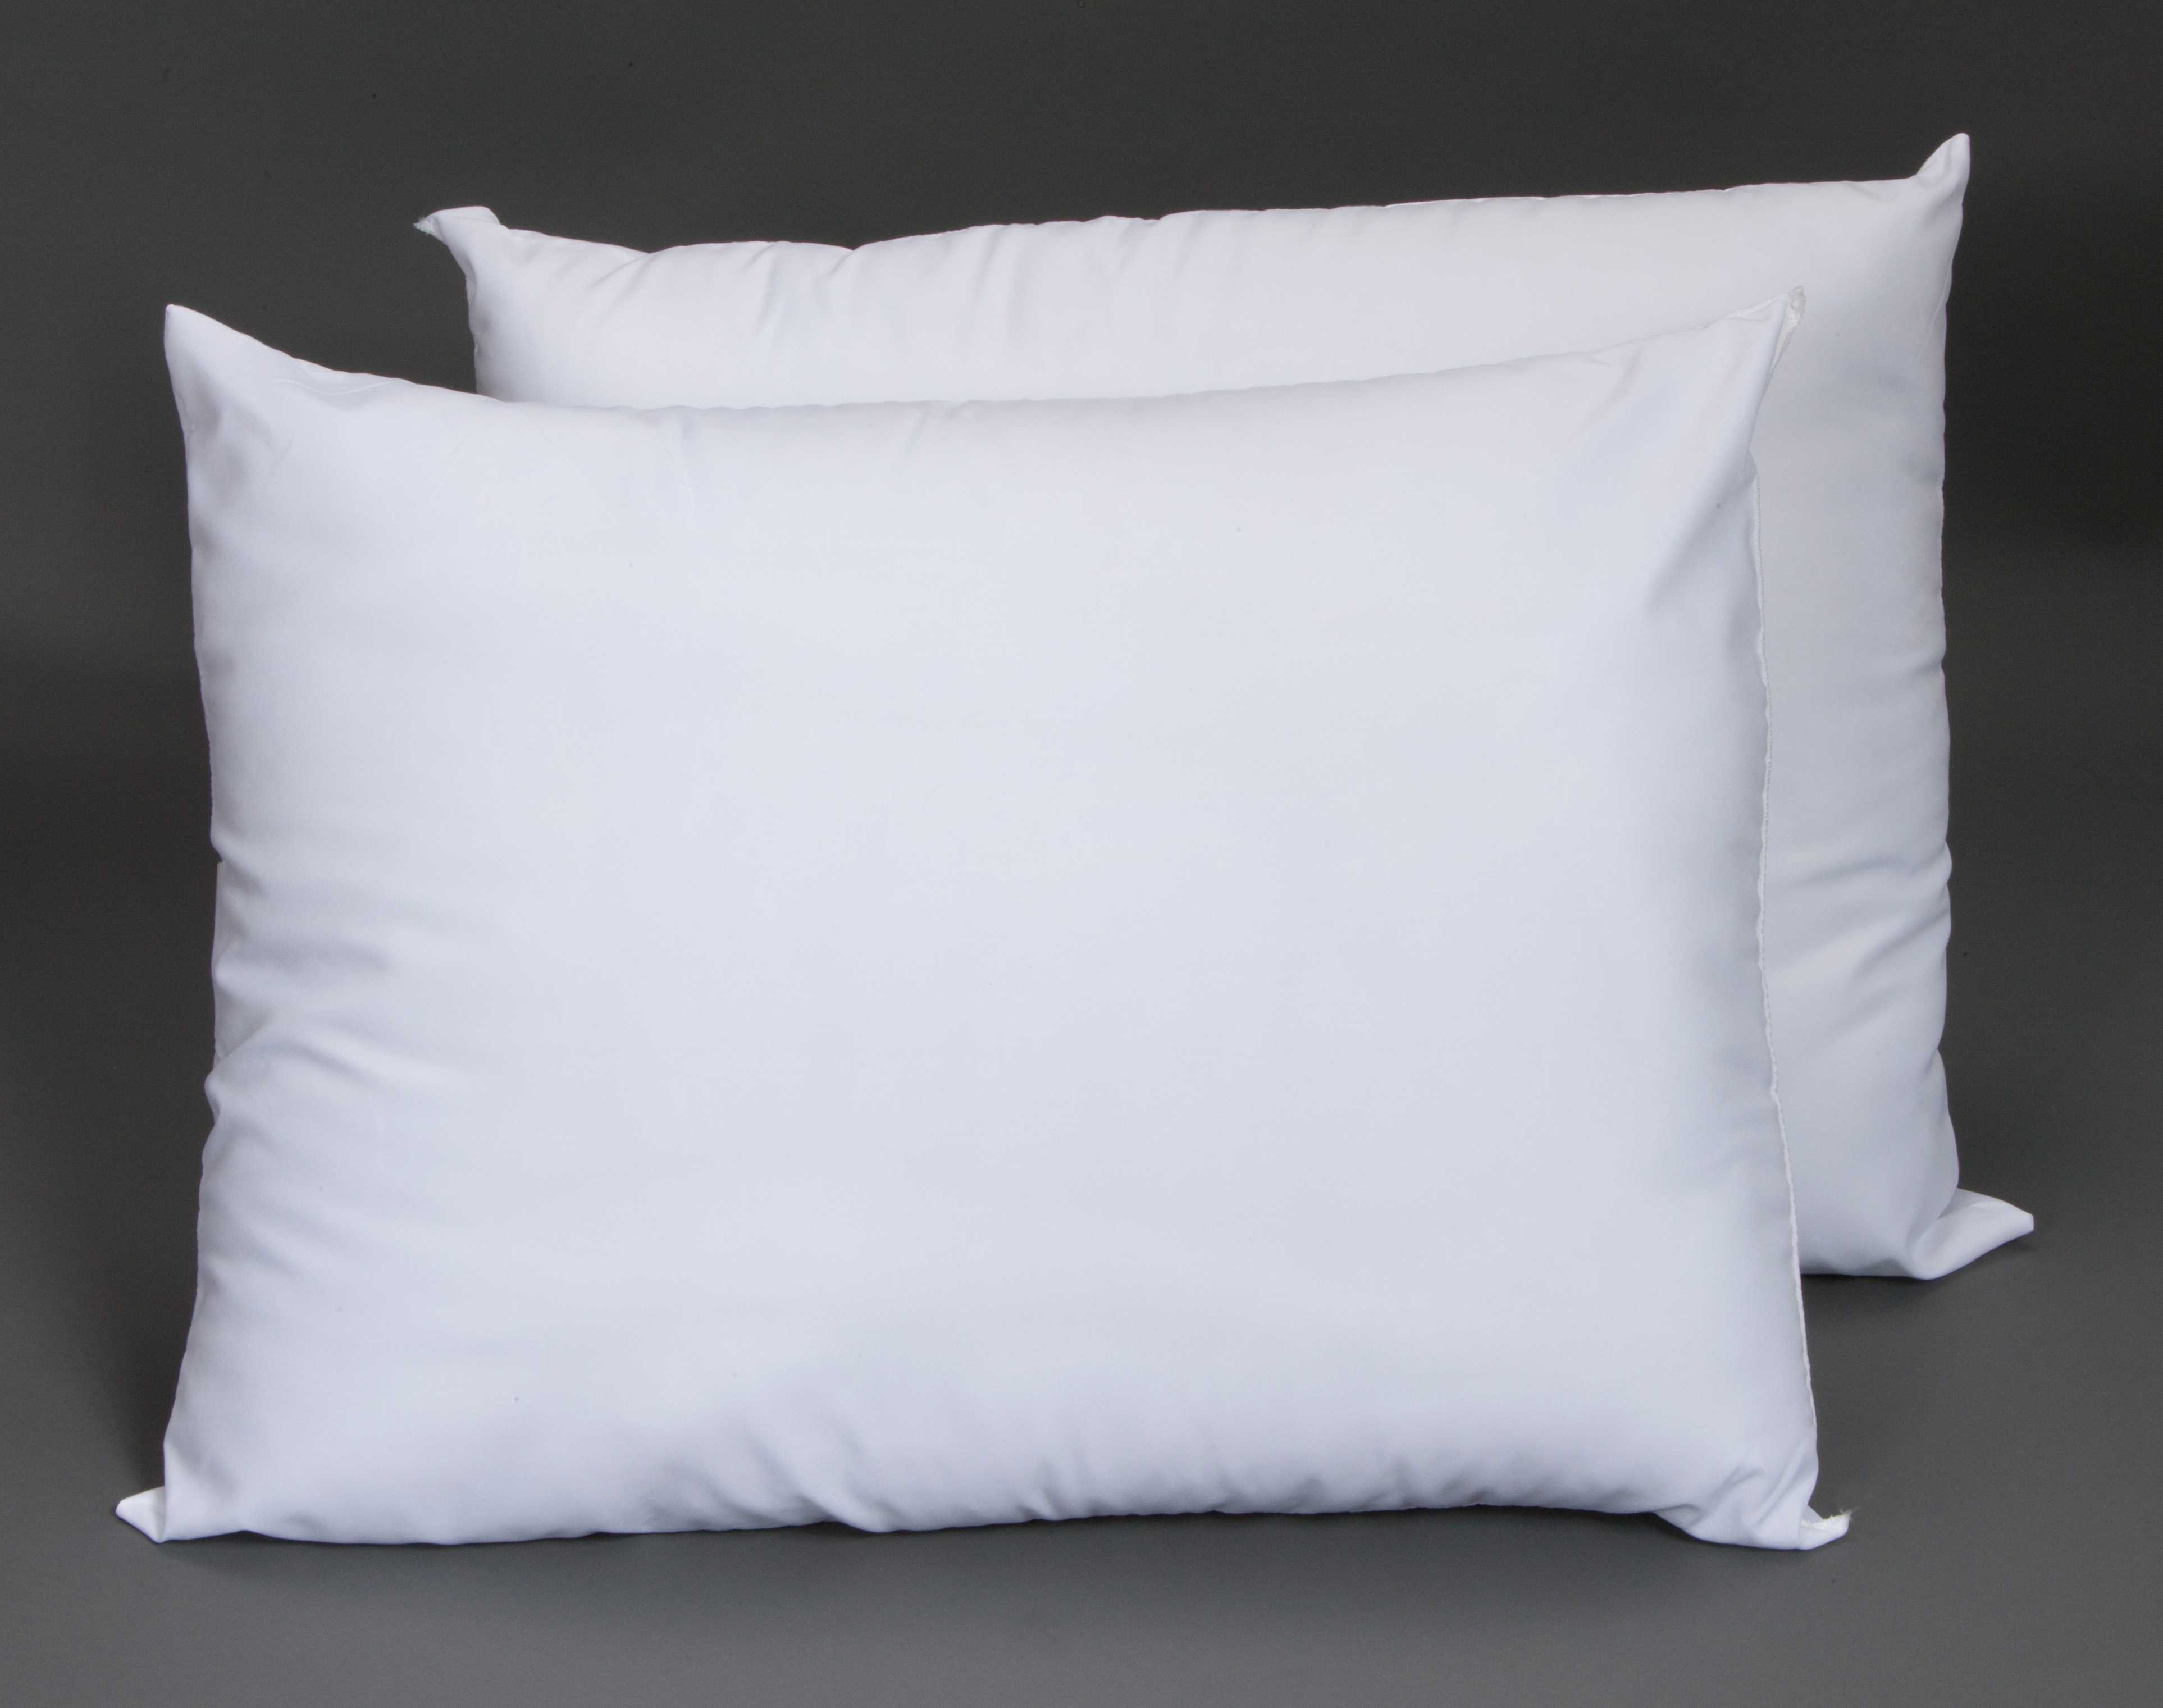 image bedding bed double coast pillows pillow firm np sizes guide blog prod ddarfirm downaround pacific